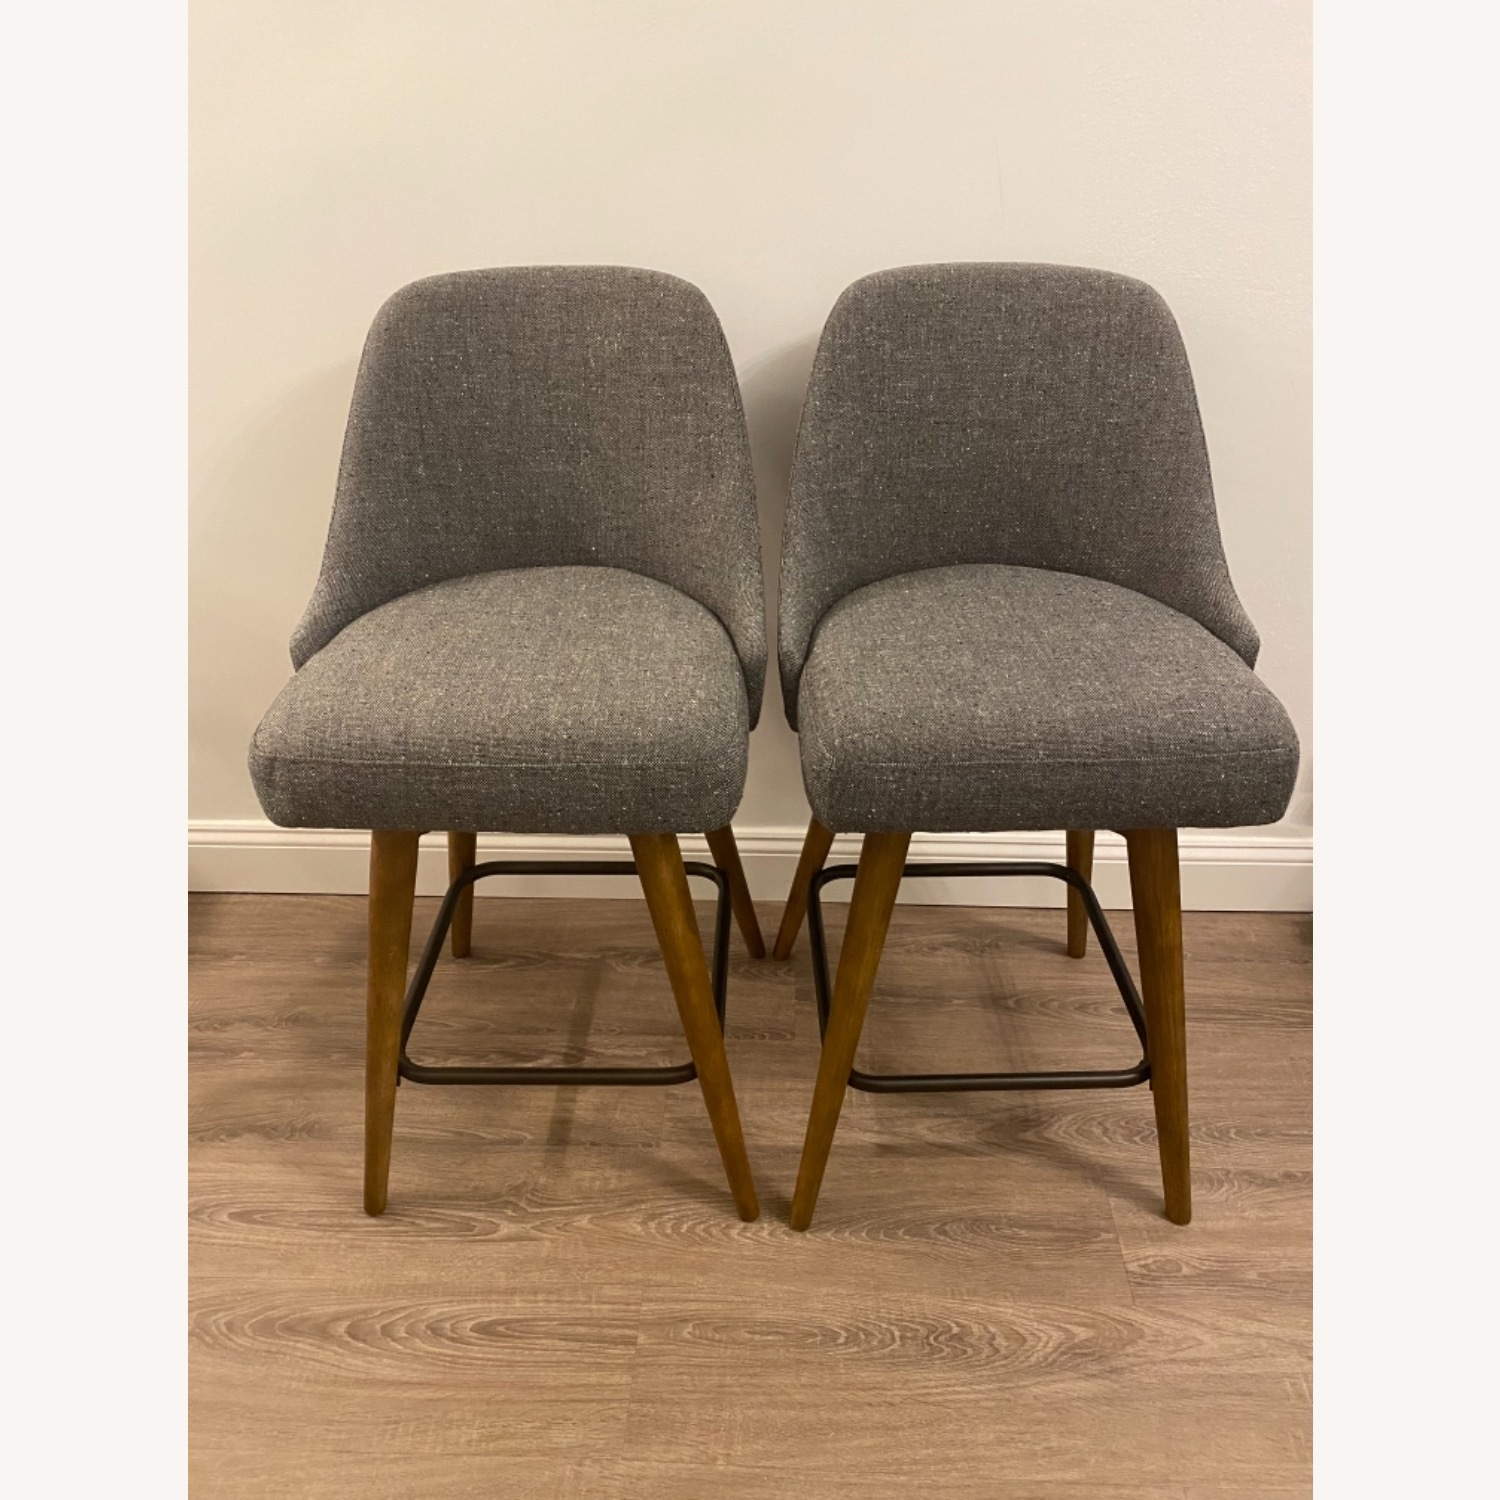 West Elm Upholstered Counter Stools - image-2